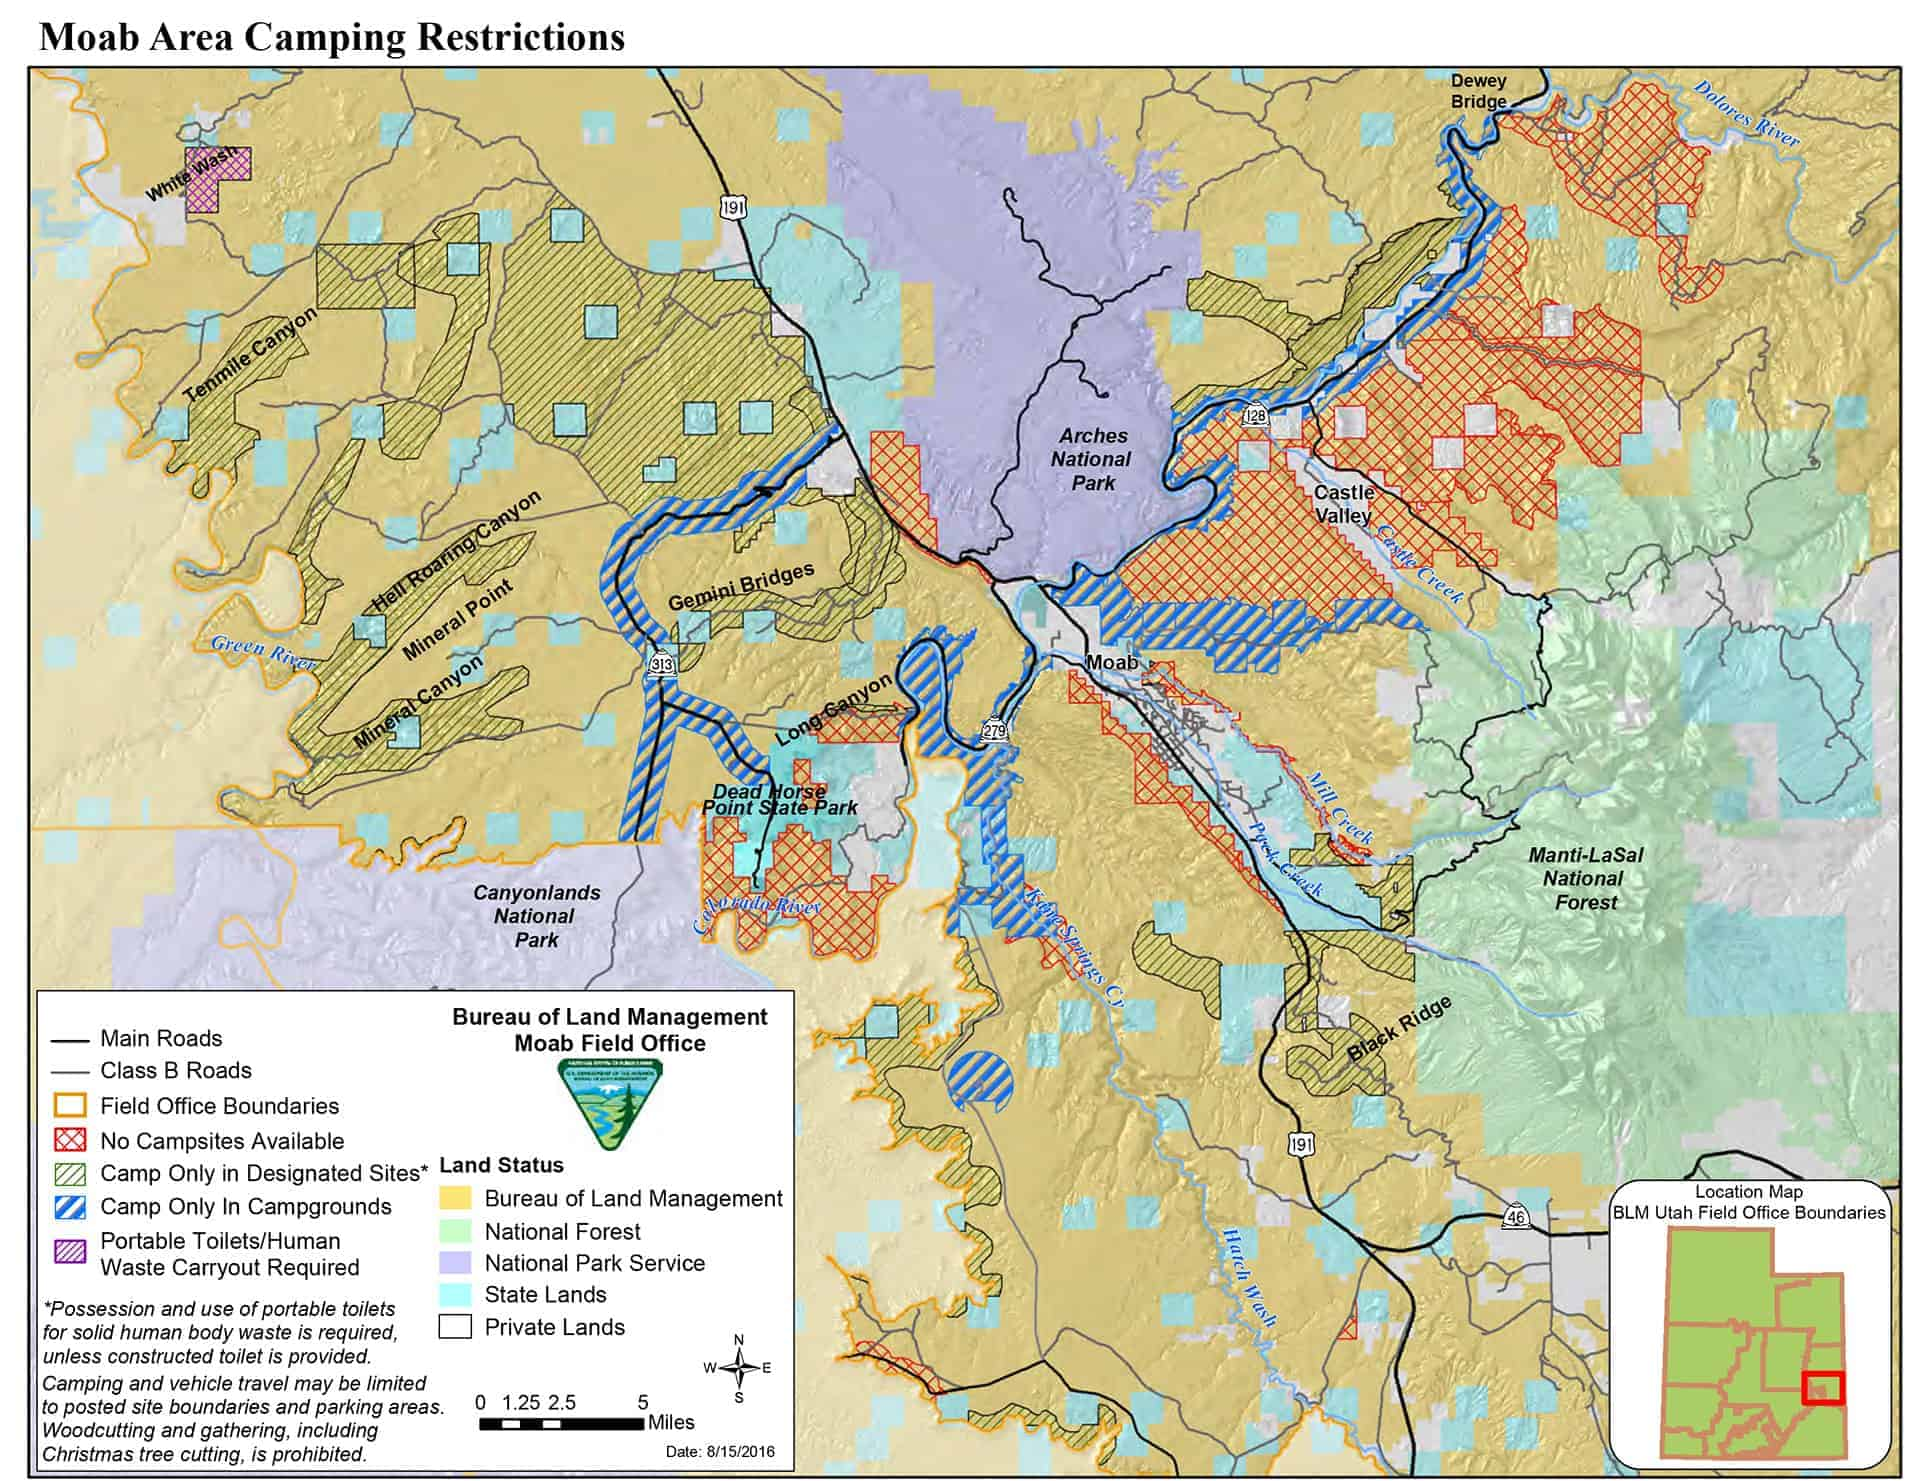 Map showing Moab area campground restrictions.